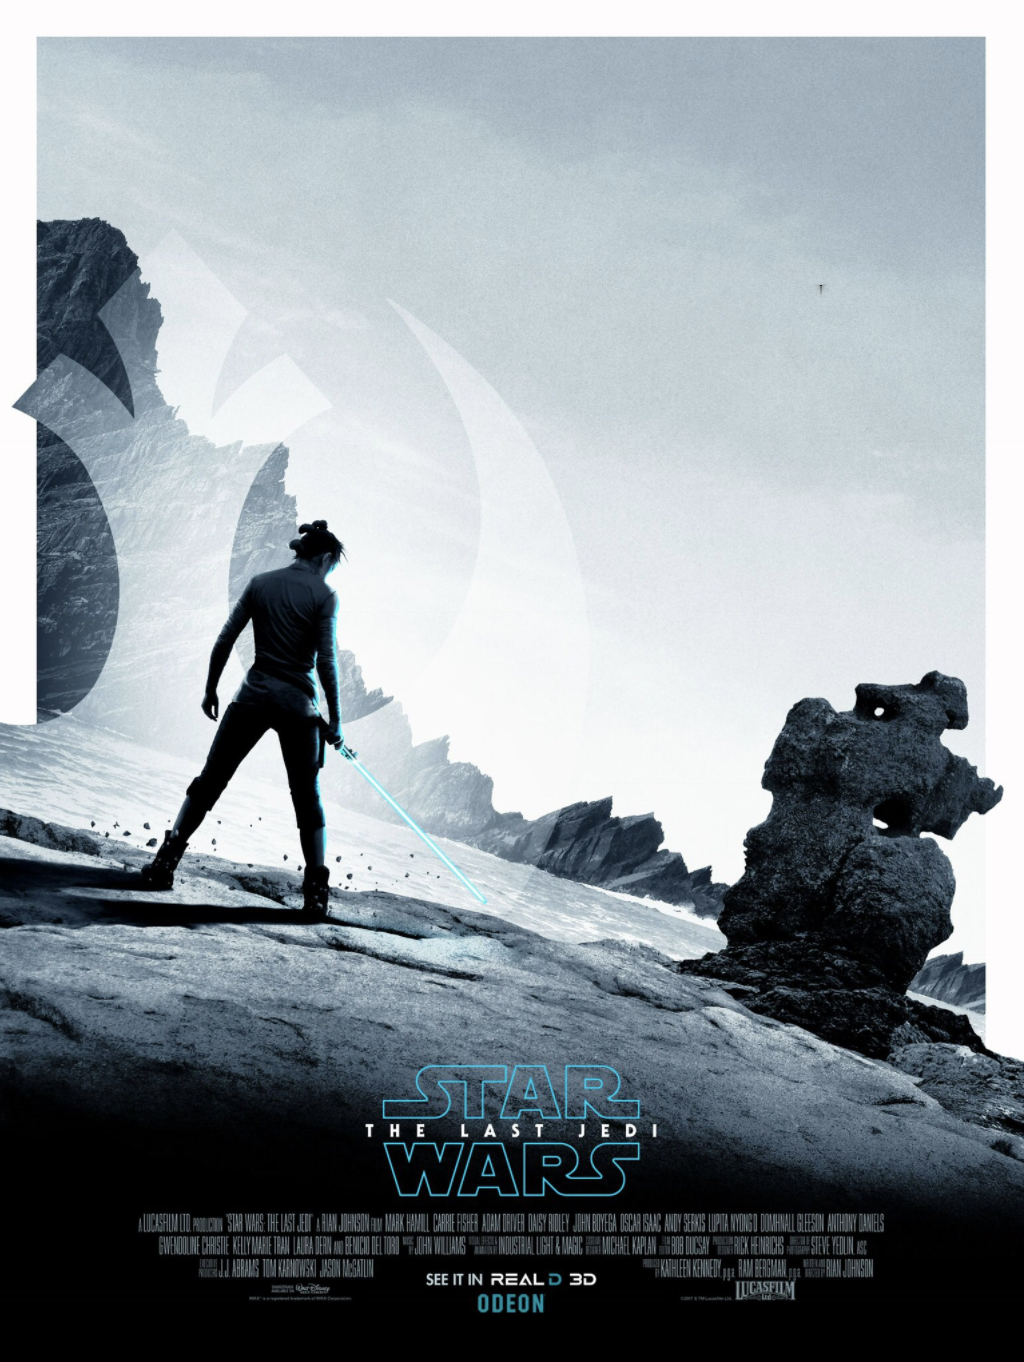 new-star-wars-the-last-jedi-posters-and-early-buzz-says-its-a-surprising-funny-and-jaw-dropping-film4